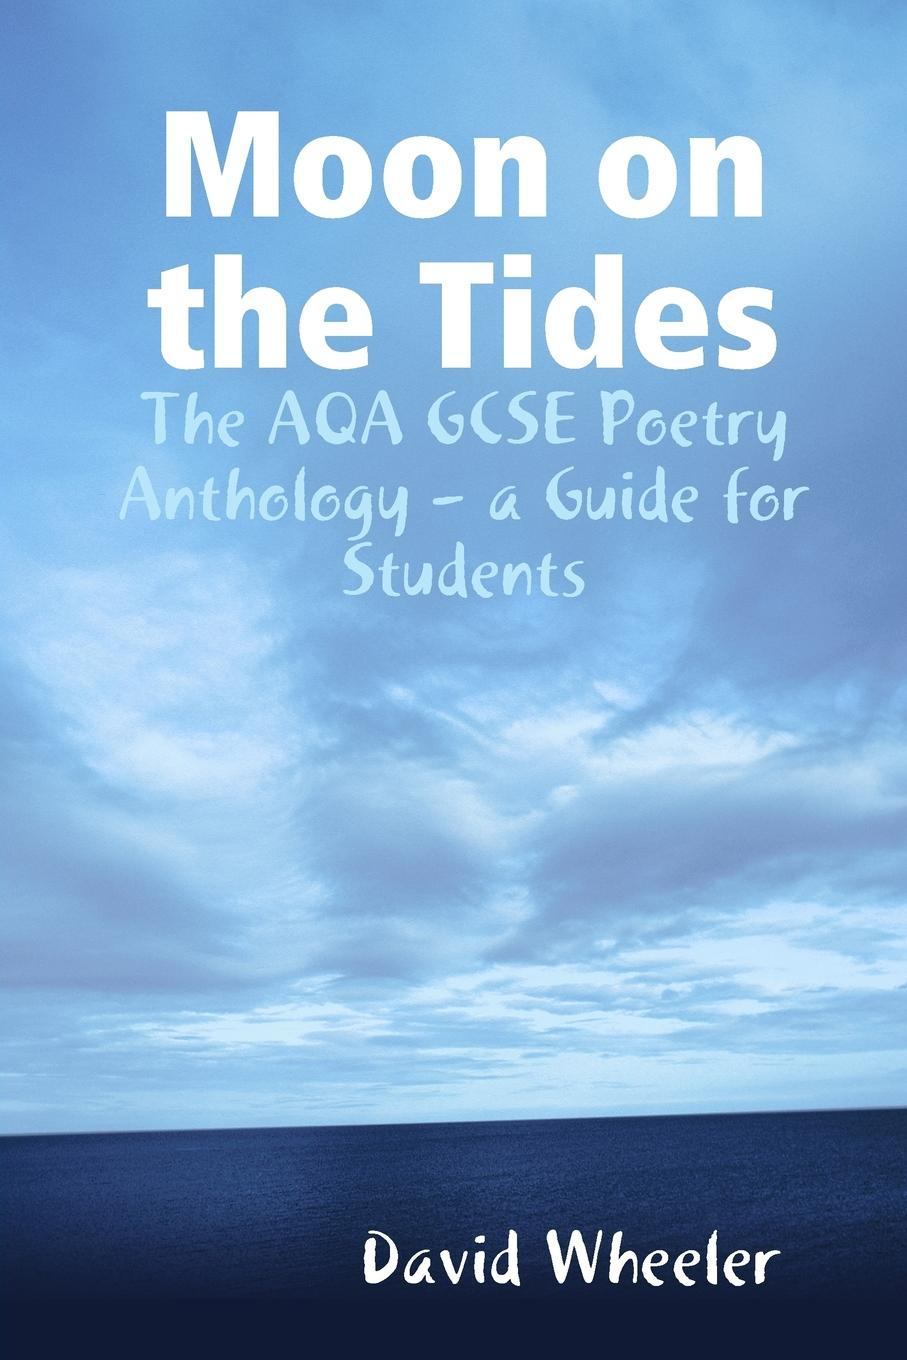 David Wheeler Moon on the Tides. The AQA GCSE Poetry Anthology - a Guide for Students minimalist living explained